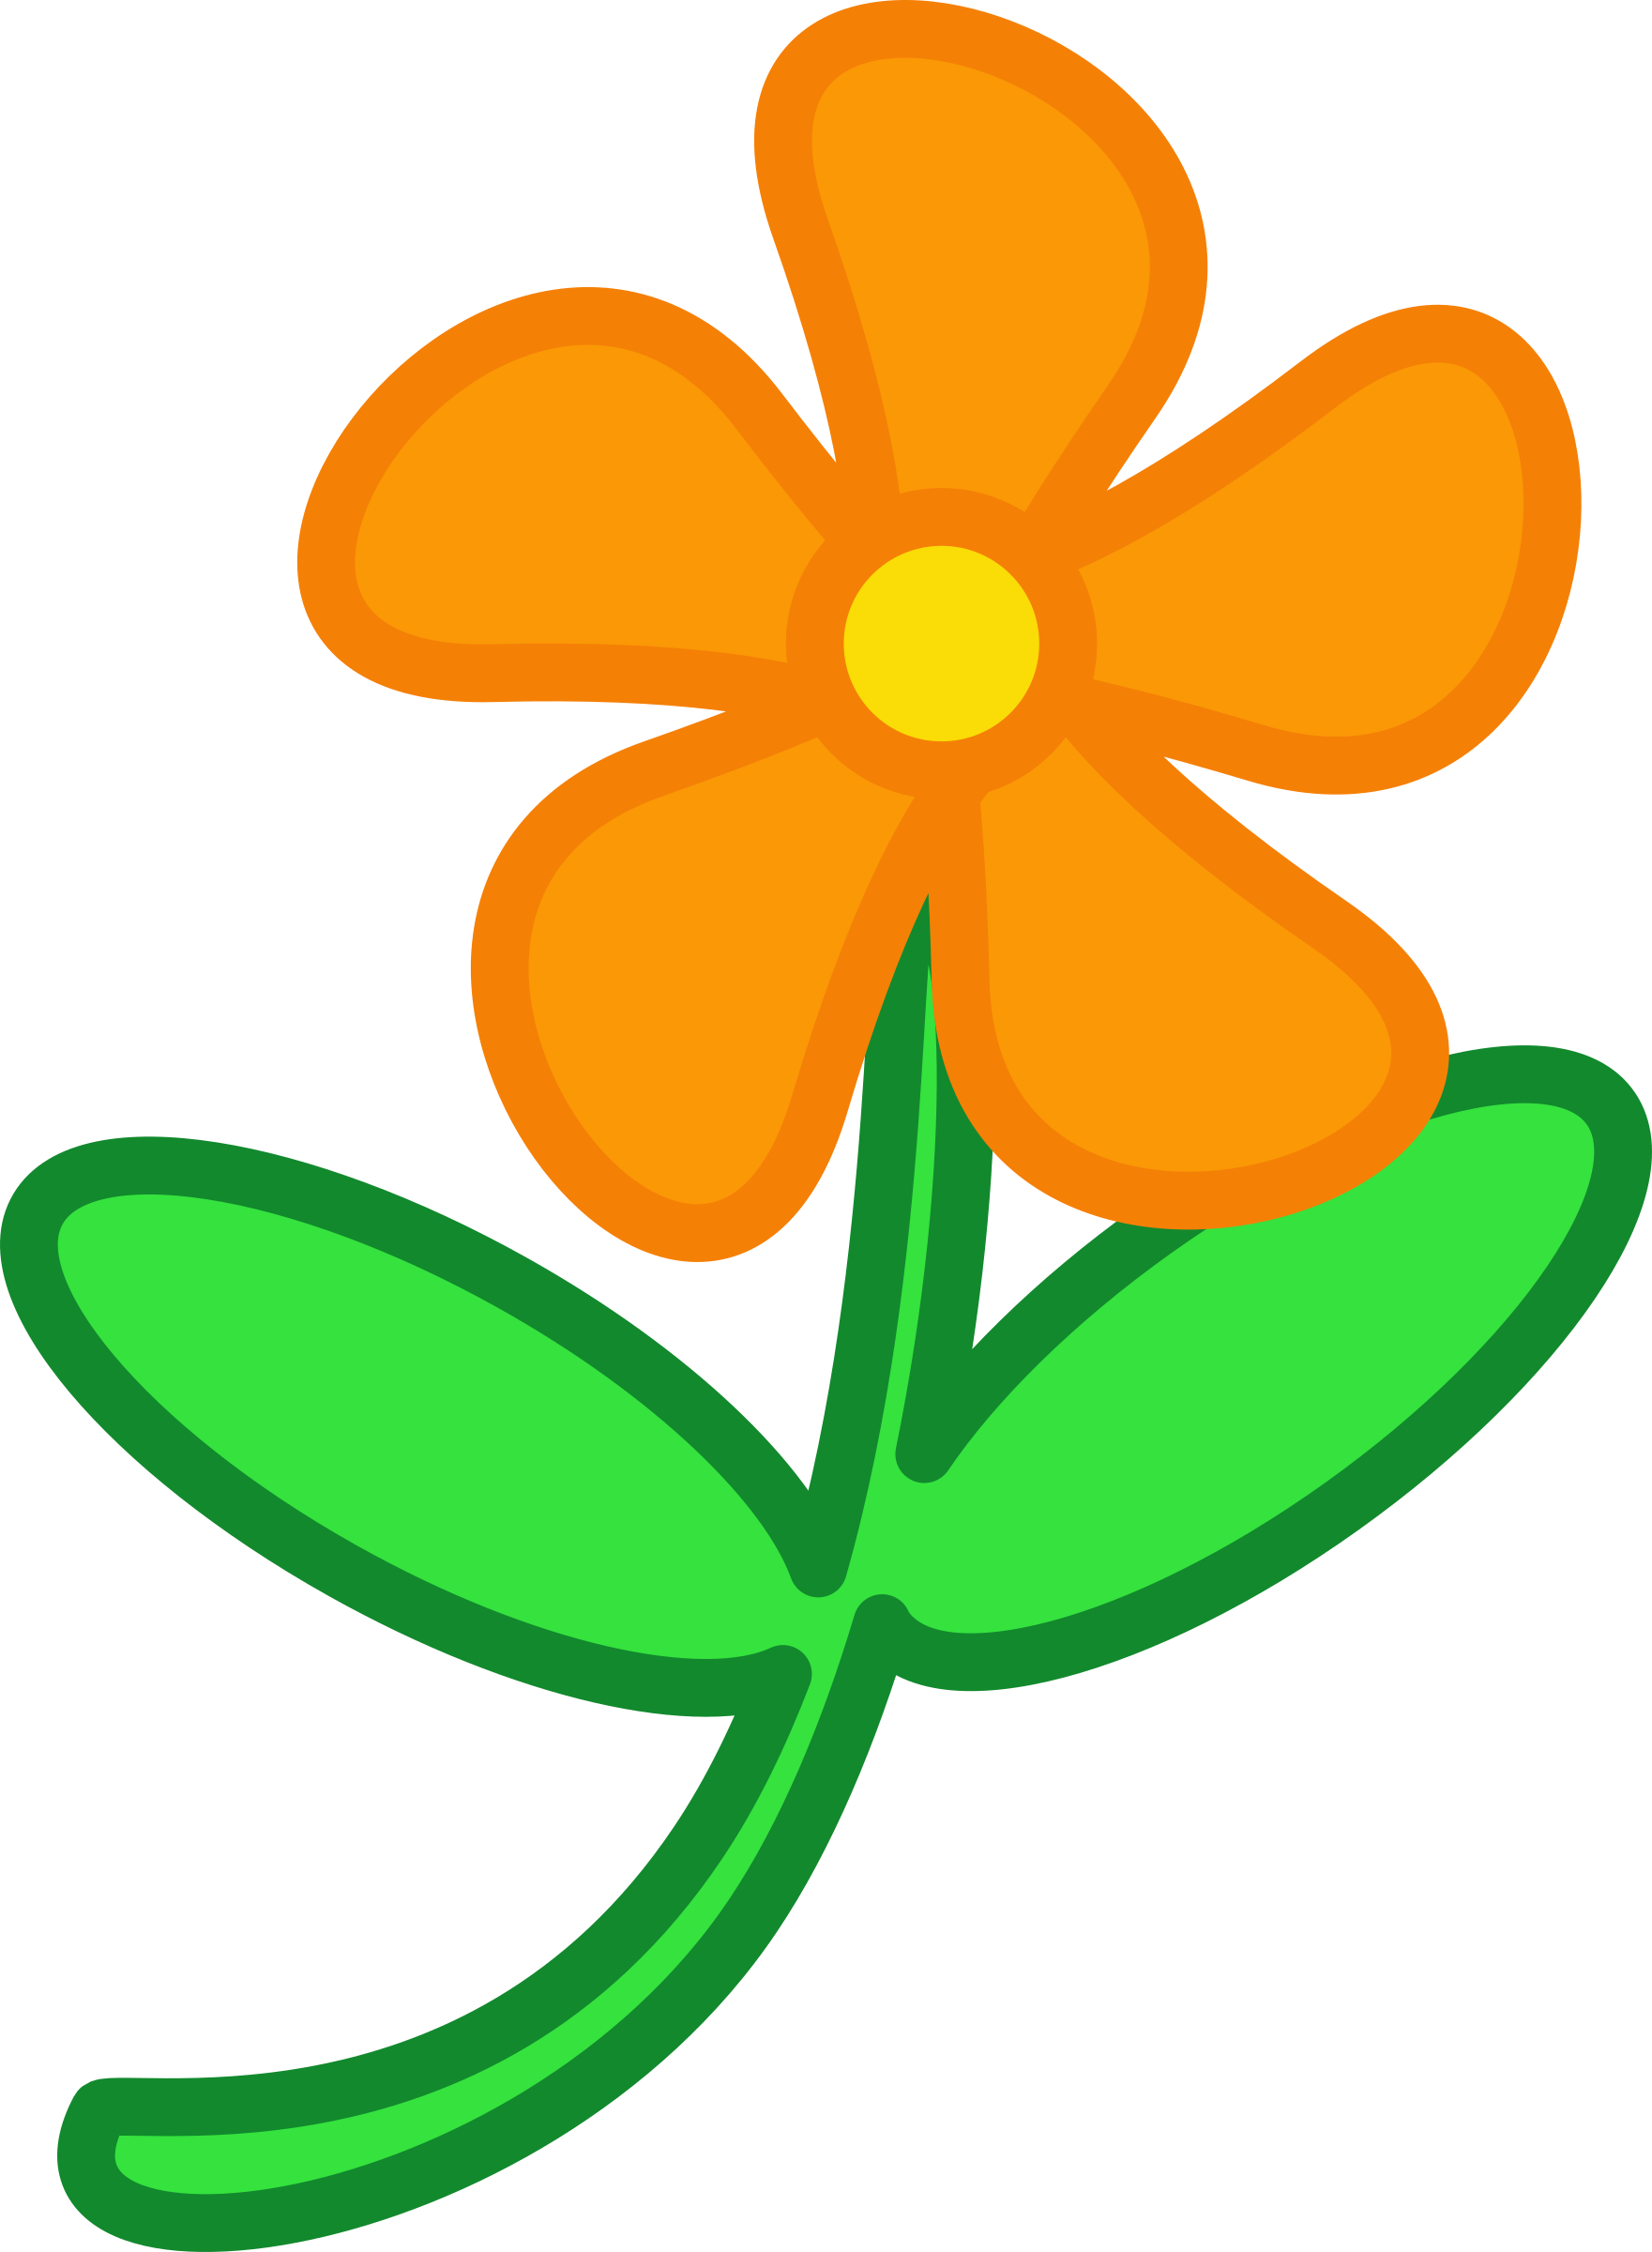 Clipart big image. Cartoon flower png